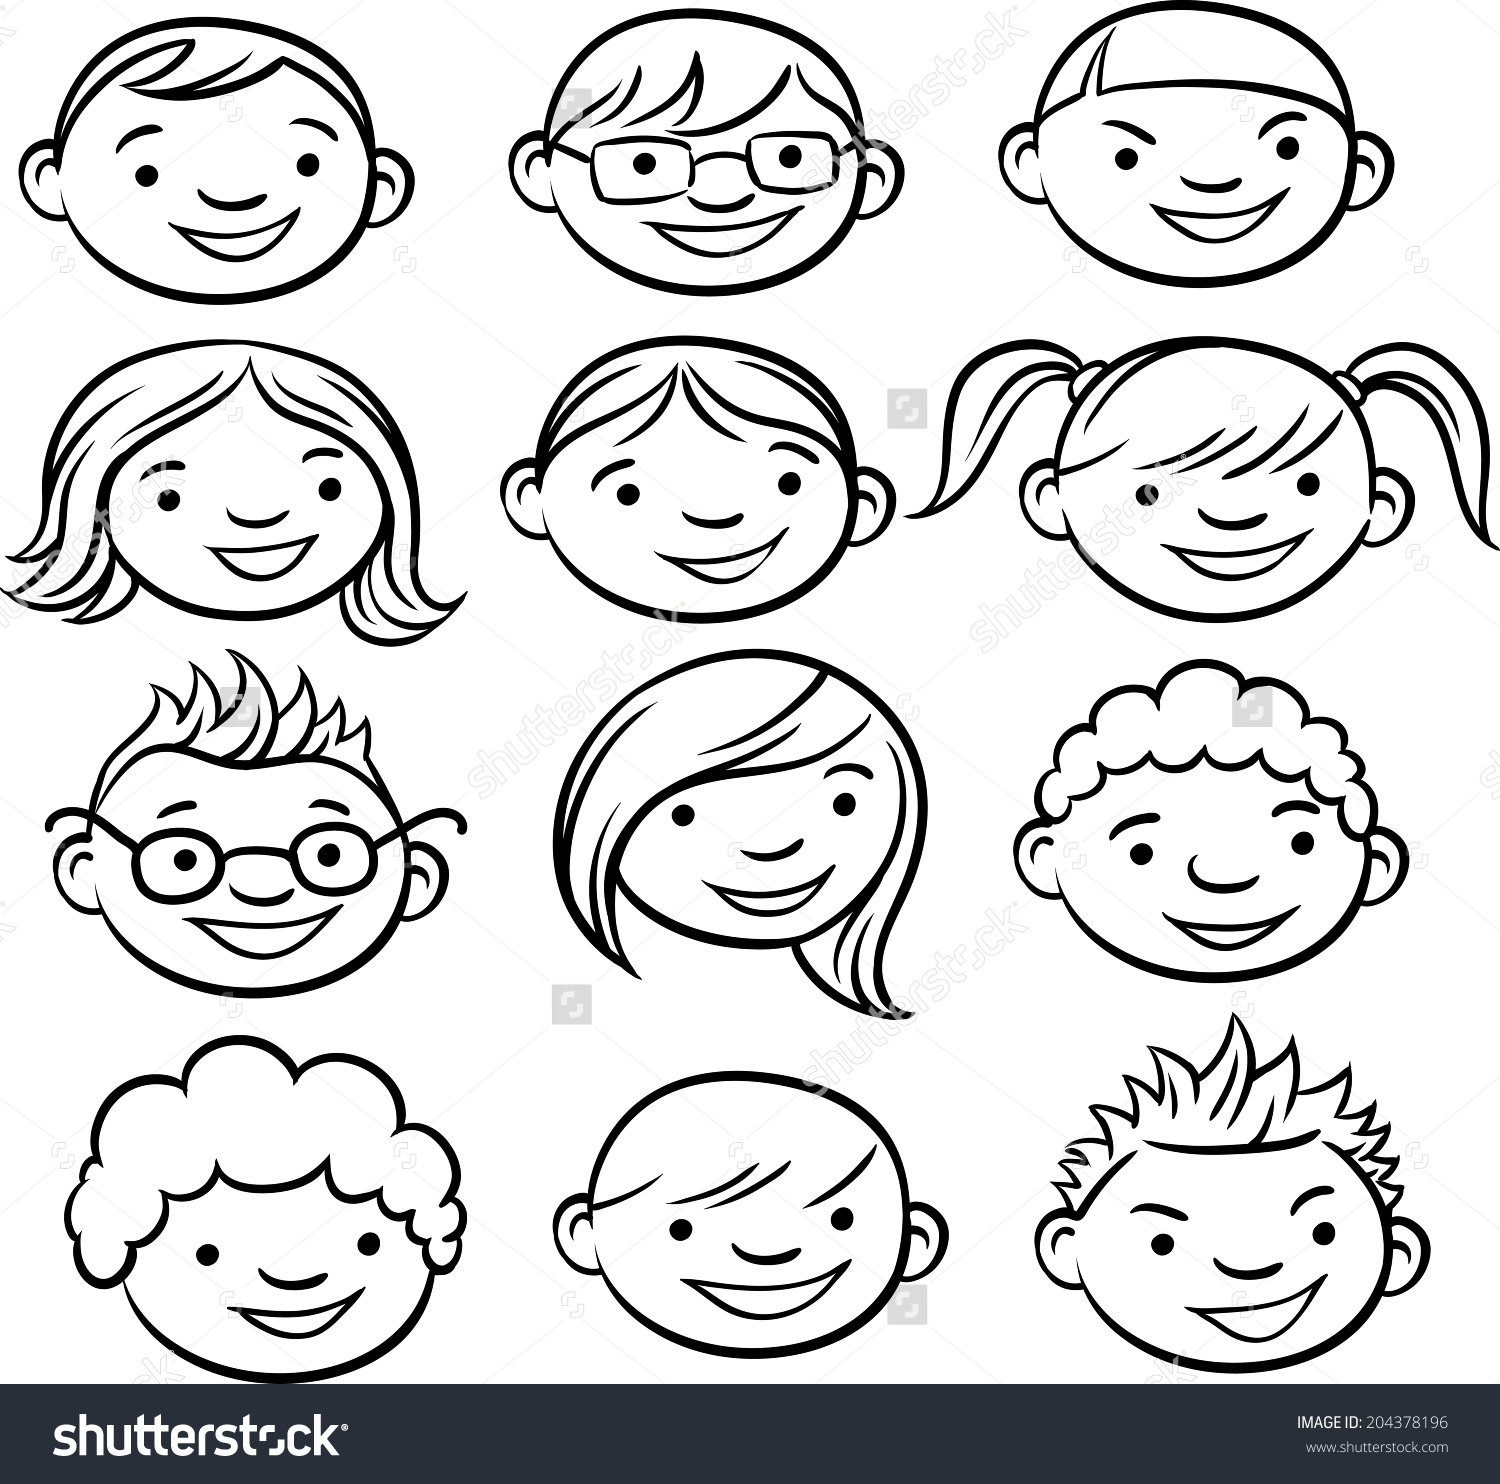 1500x1484 Drawing People For Kids Drawing People For Kids Download Kids